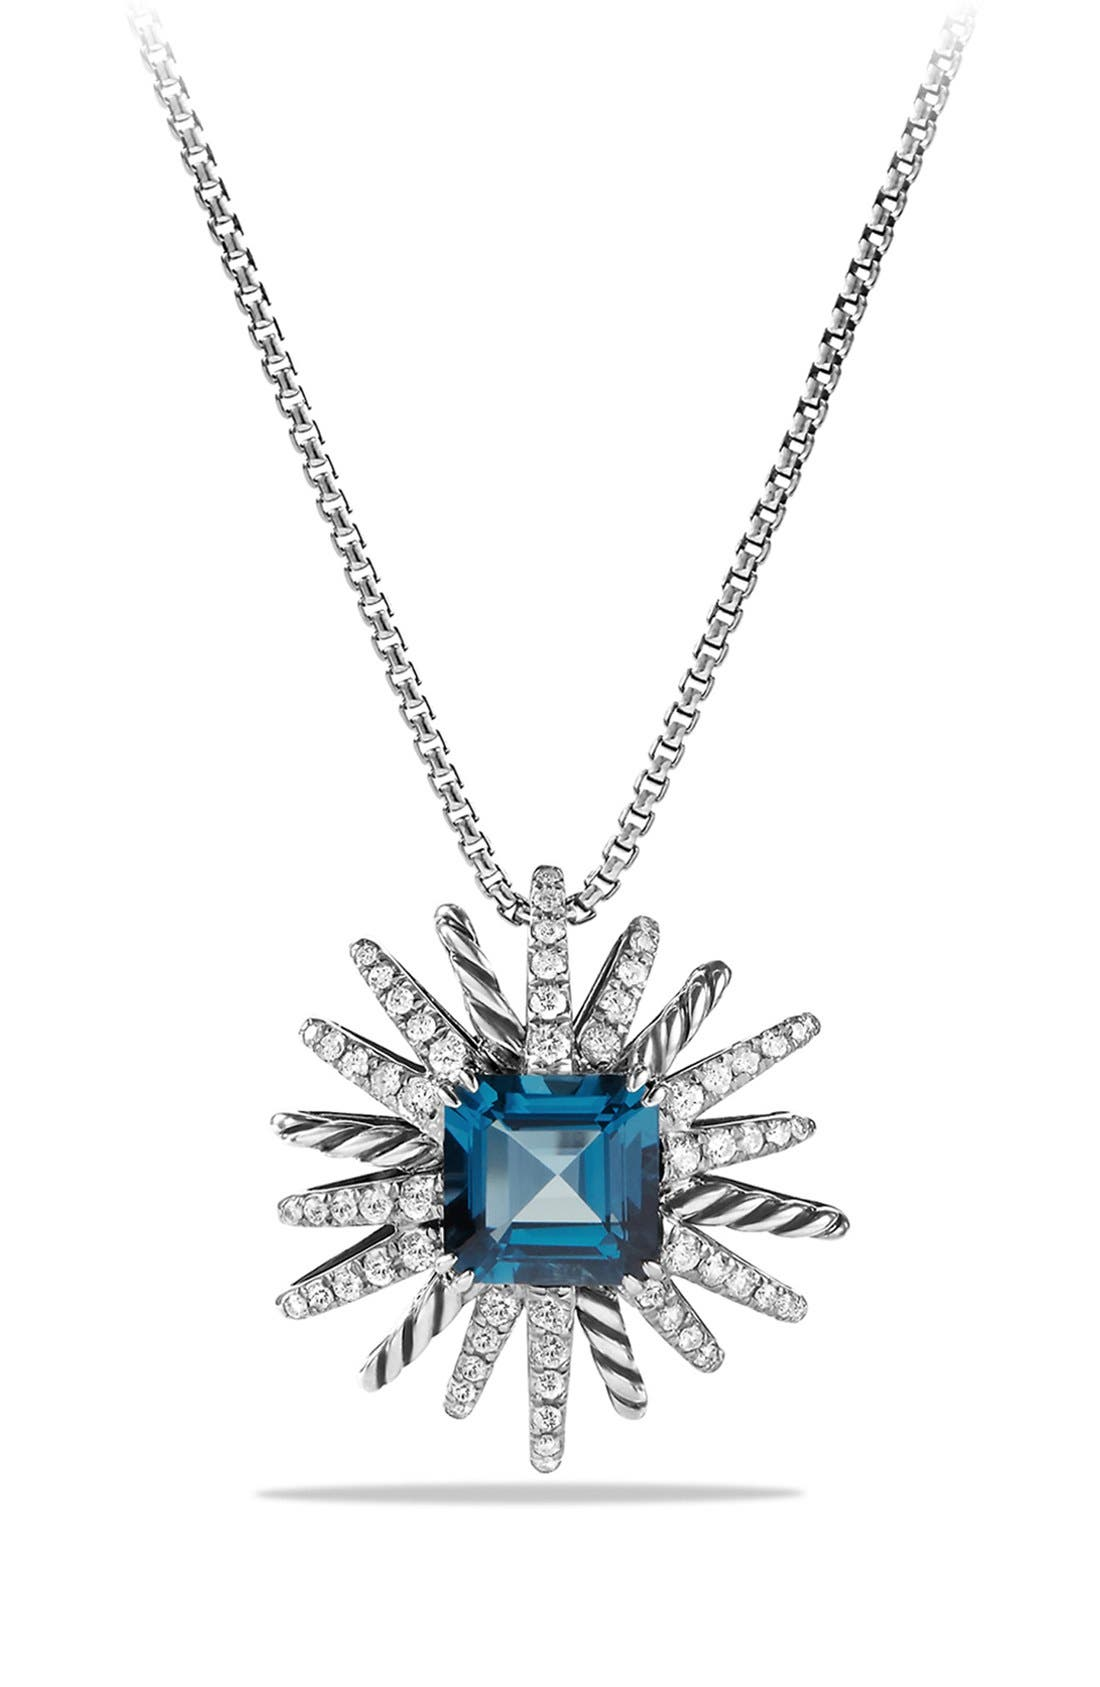 David Yurman 'Starburst' Pendant Necklace